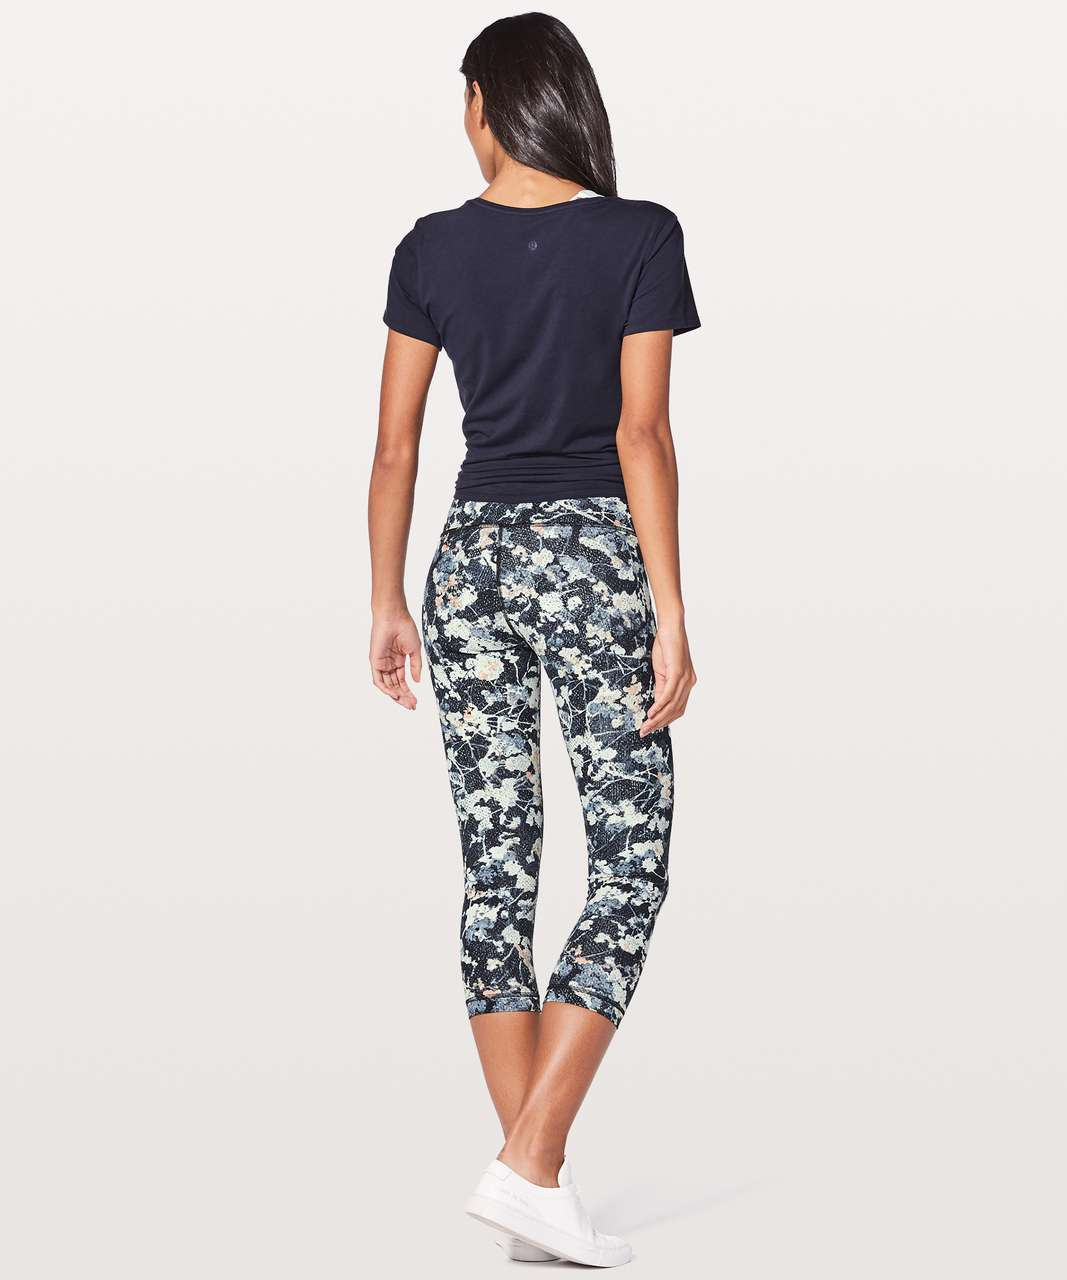 "Lululemon Wunder Under Crop (Hi-Rise) 21"" - Spring Bloom Multi"